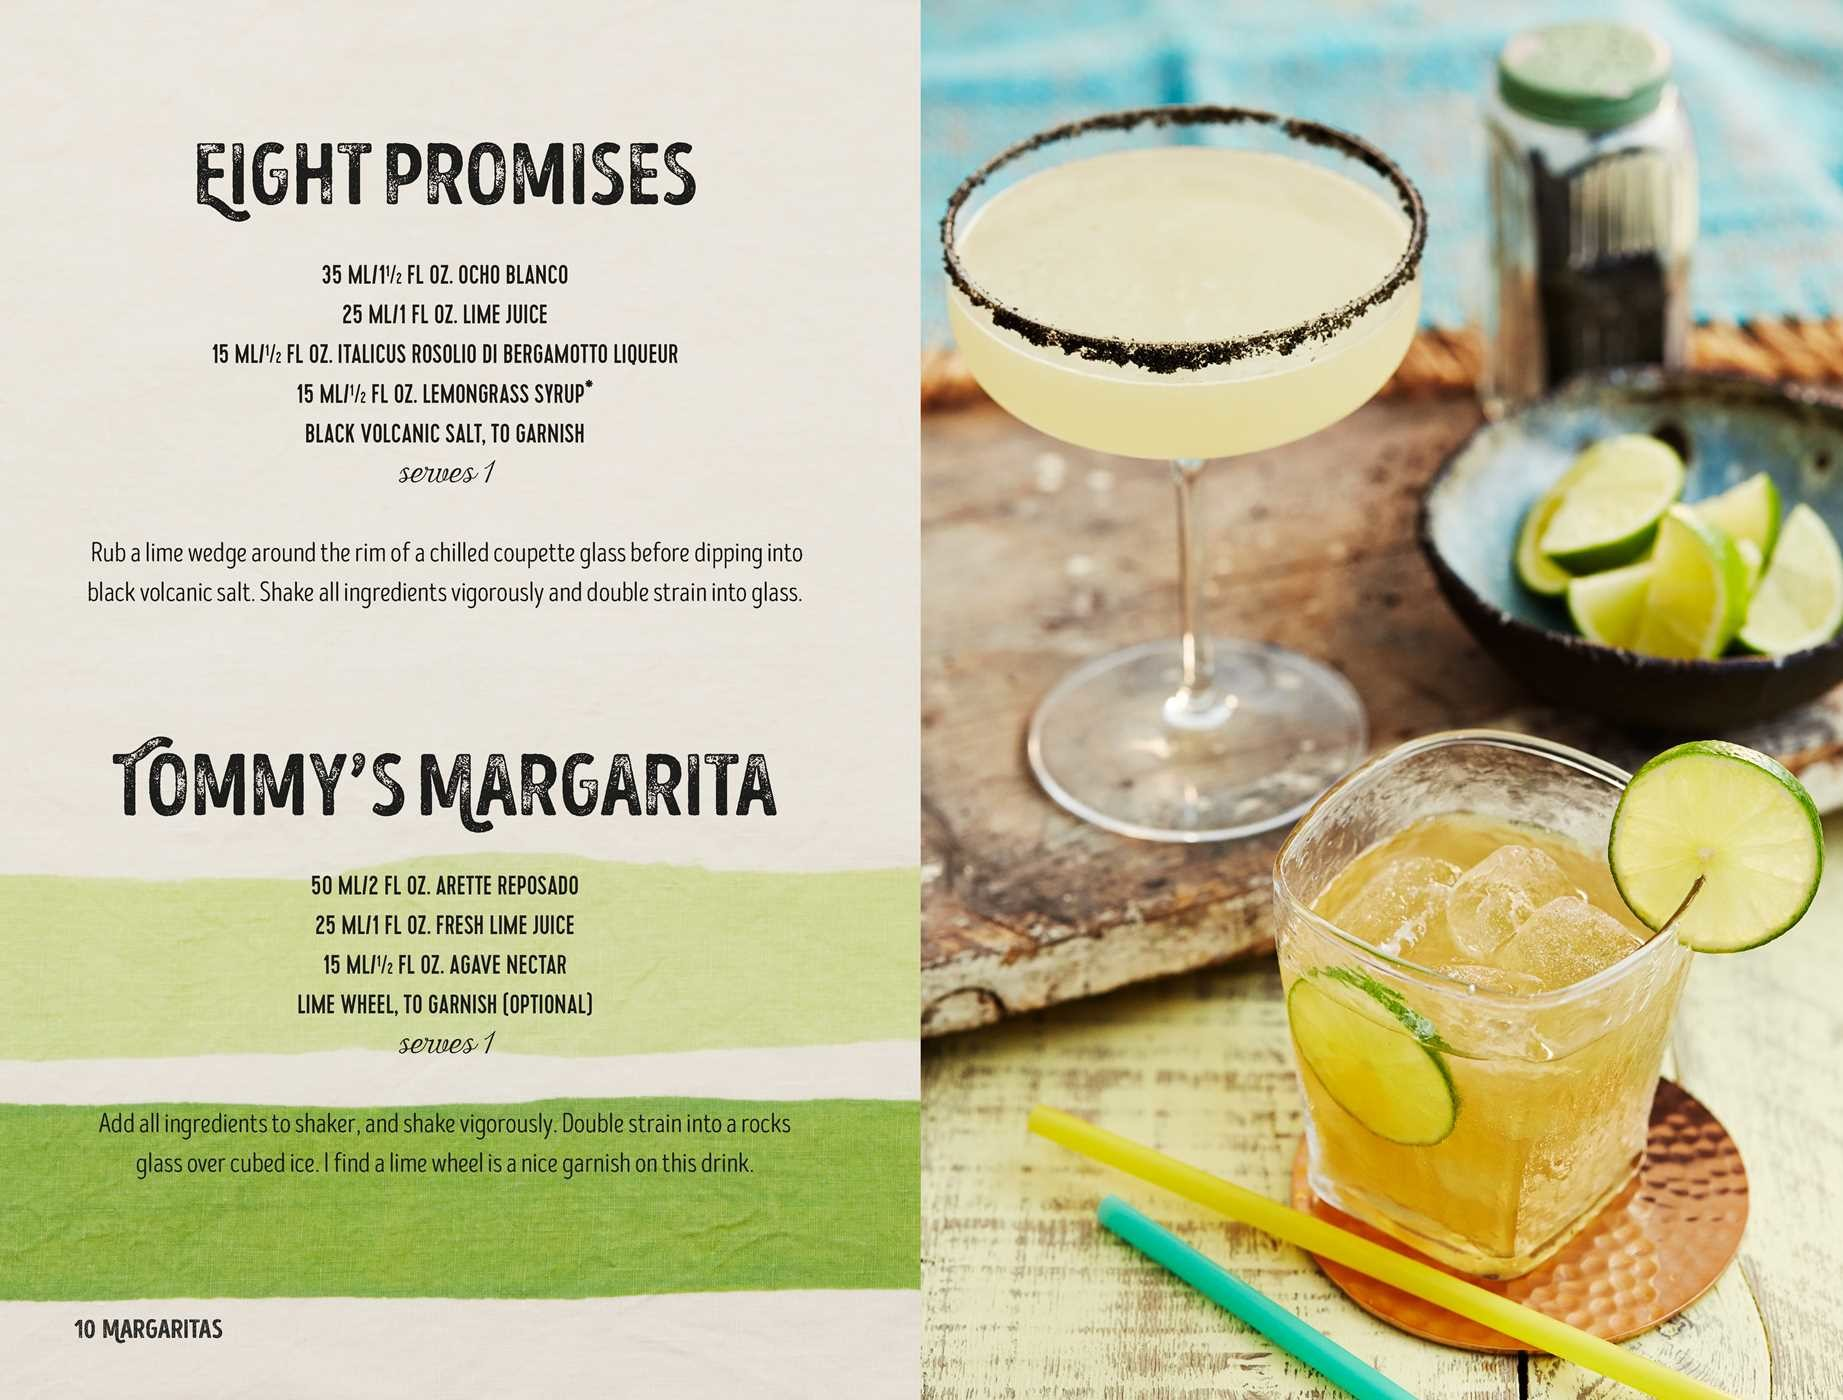 Tequila and mezcal cocktails 9781849759410.in01